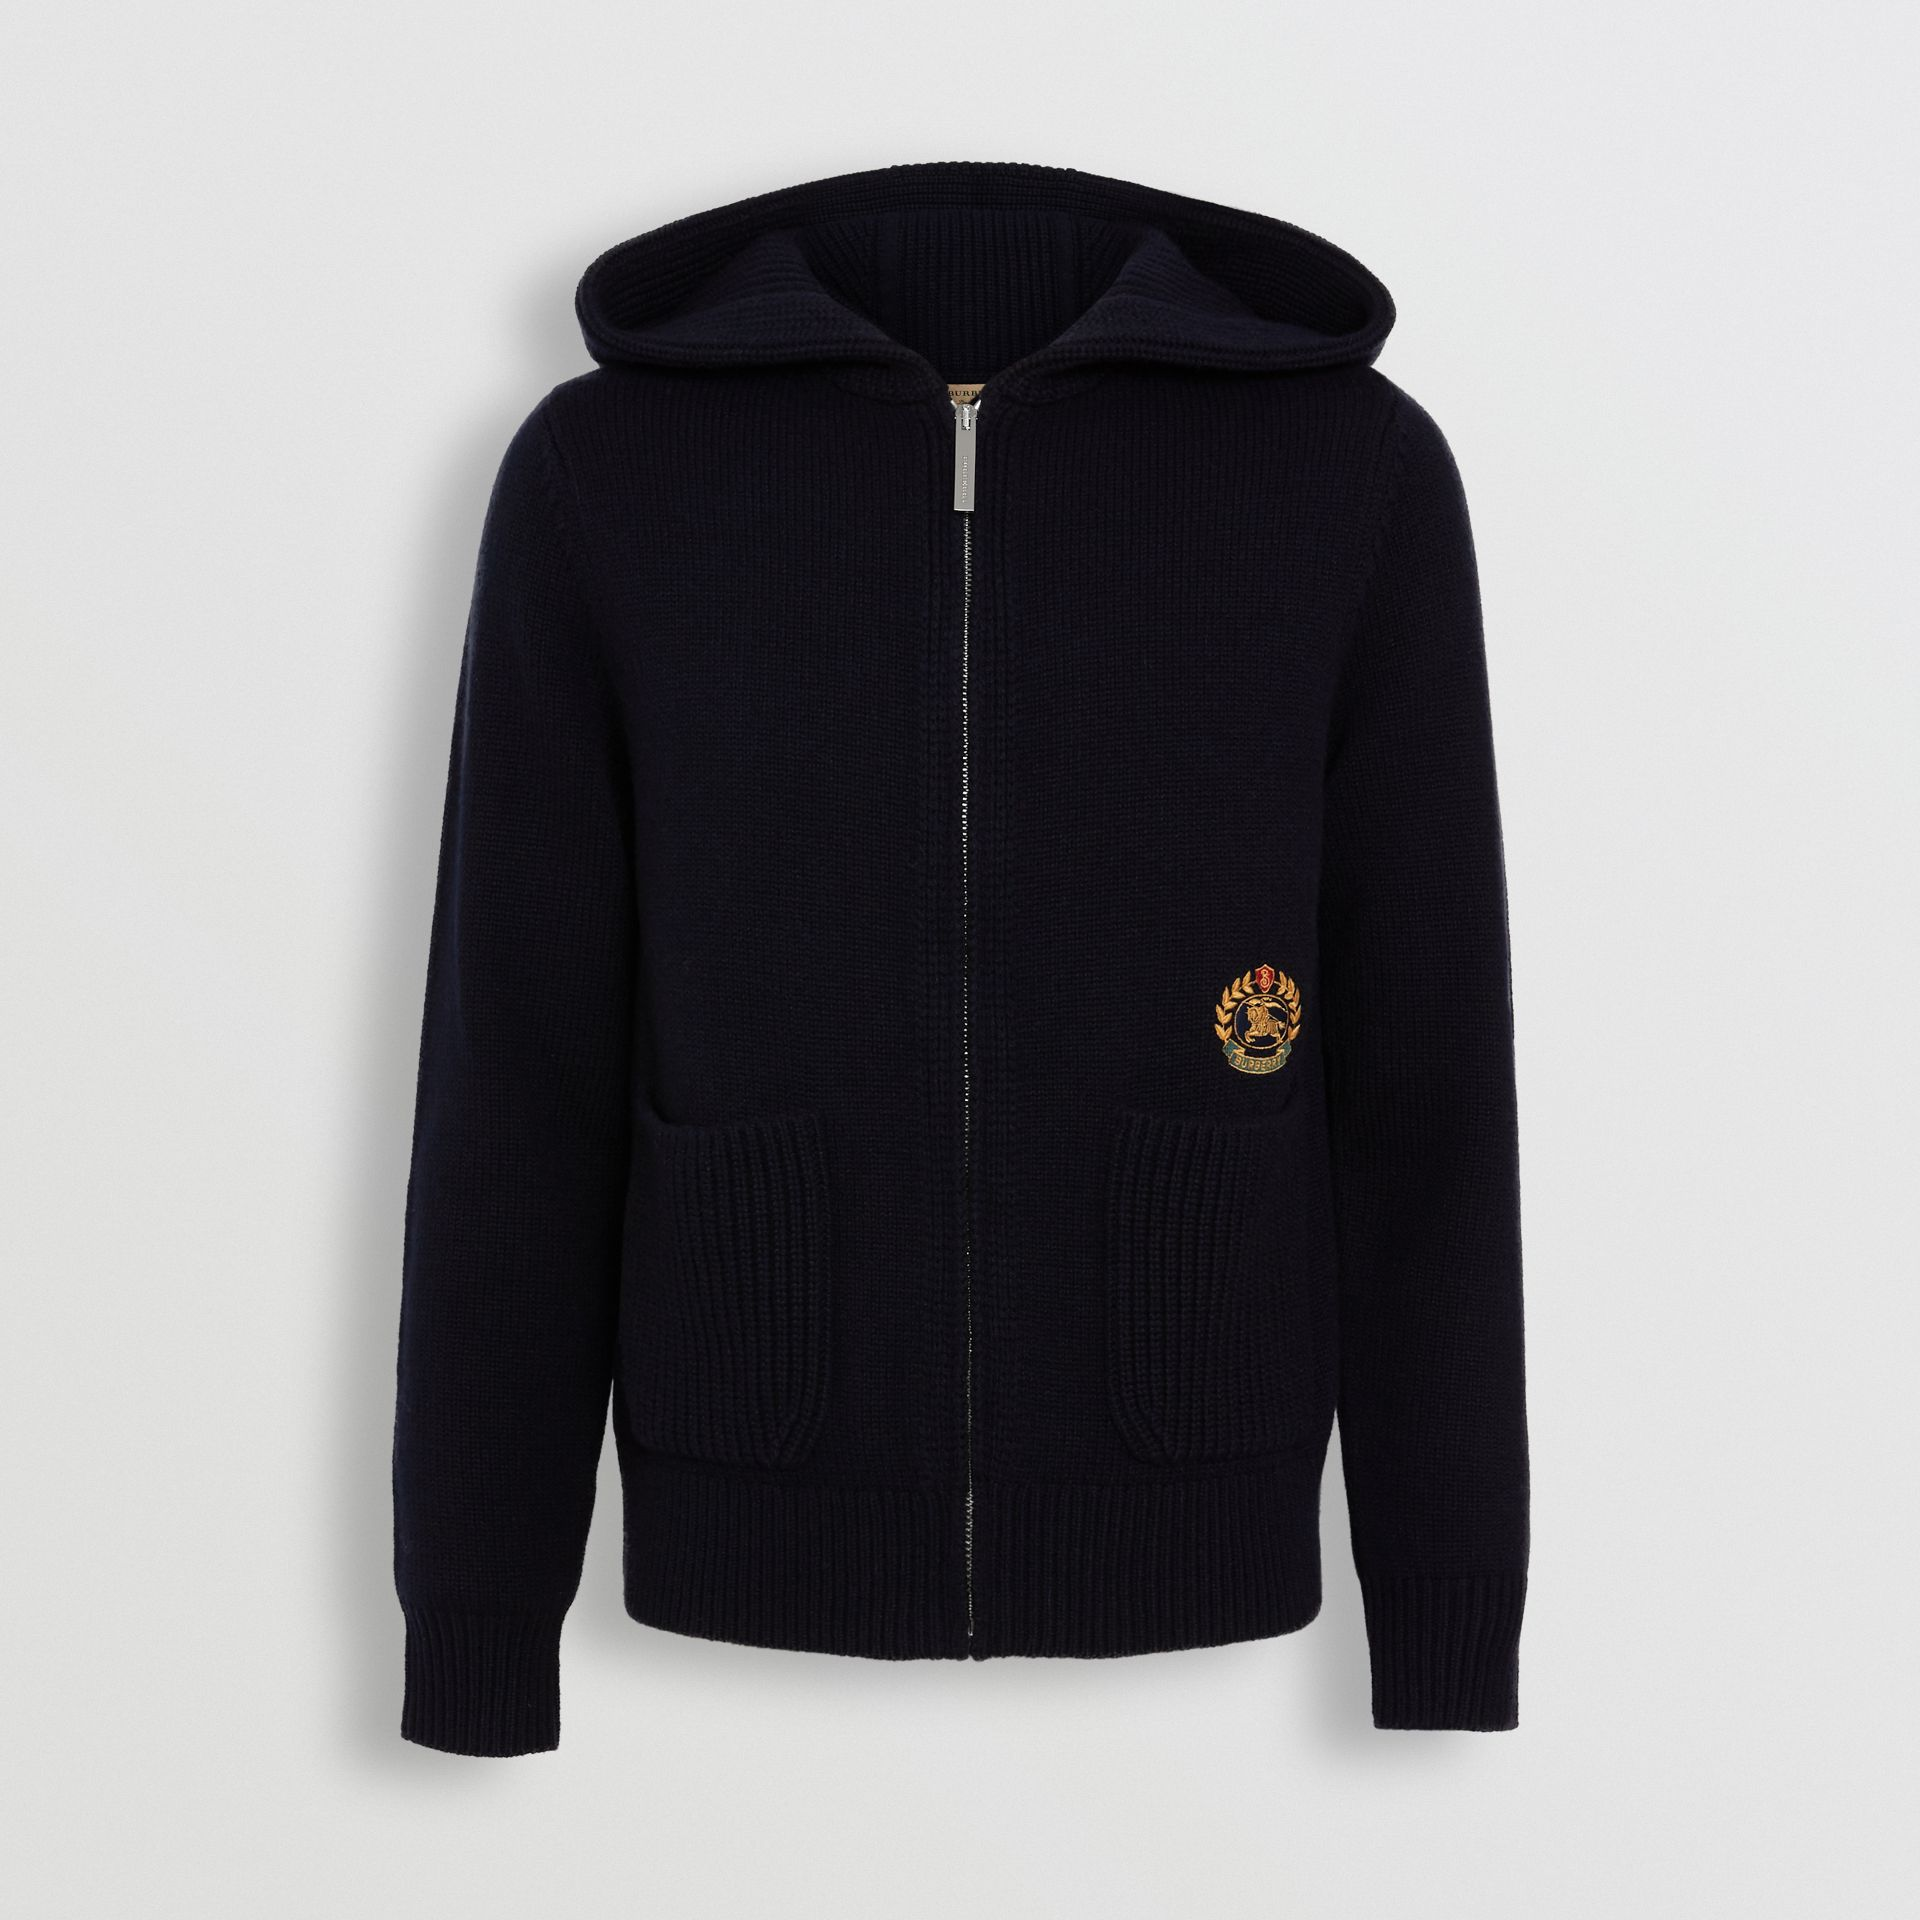 Embroidered Crest Cashmere Hooded Top in Navy - Women | Burberry United States - gallery image 3